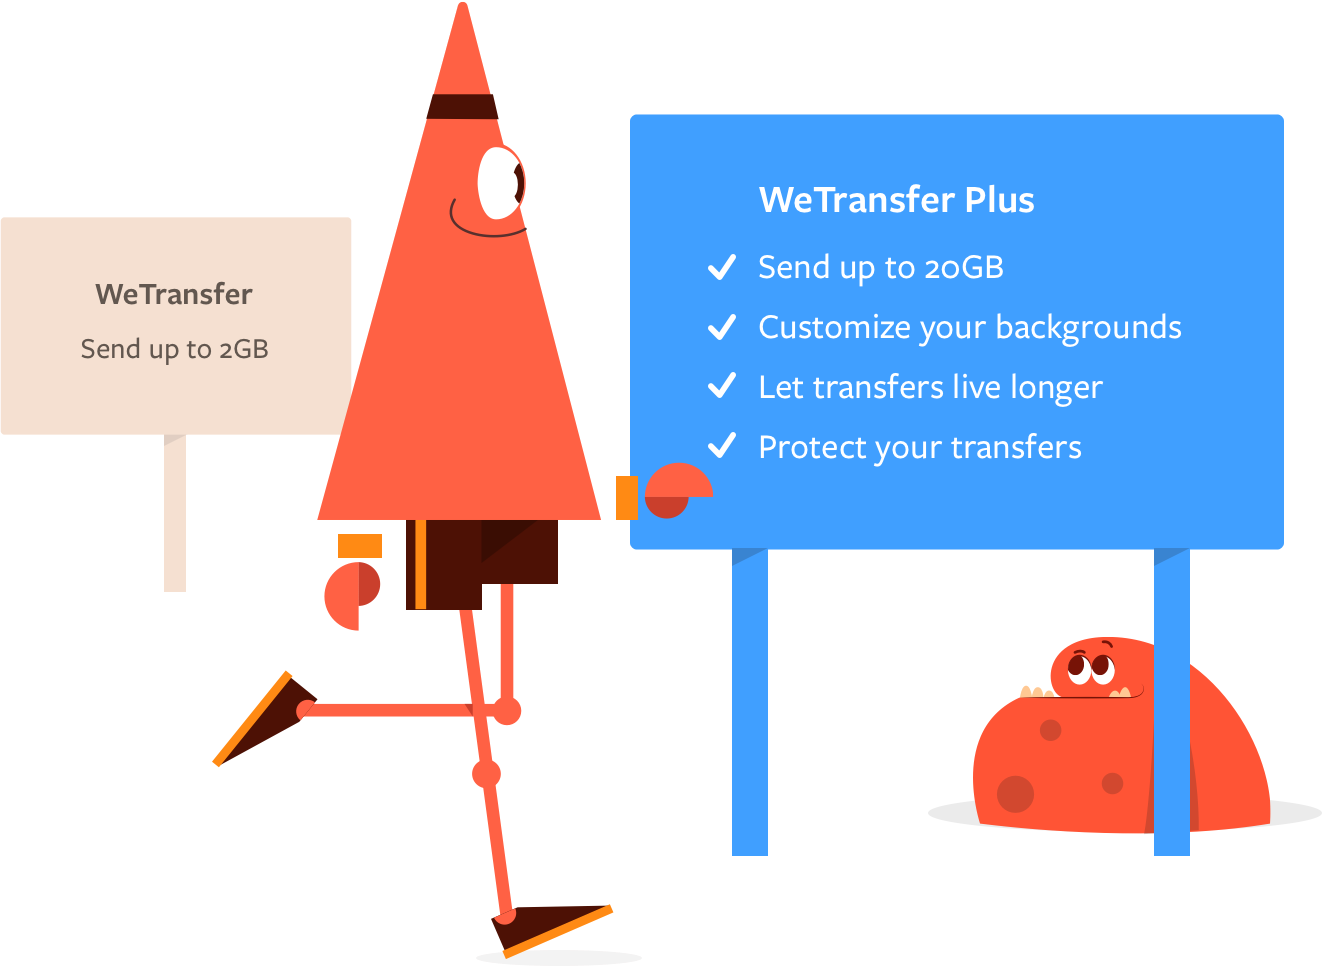 WeTransfer: DriverLayer Search Engine